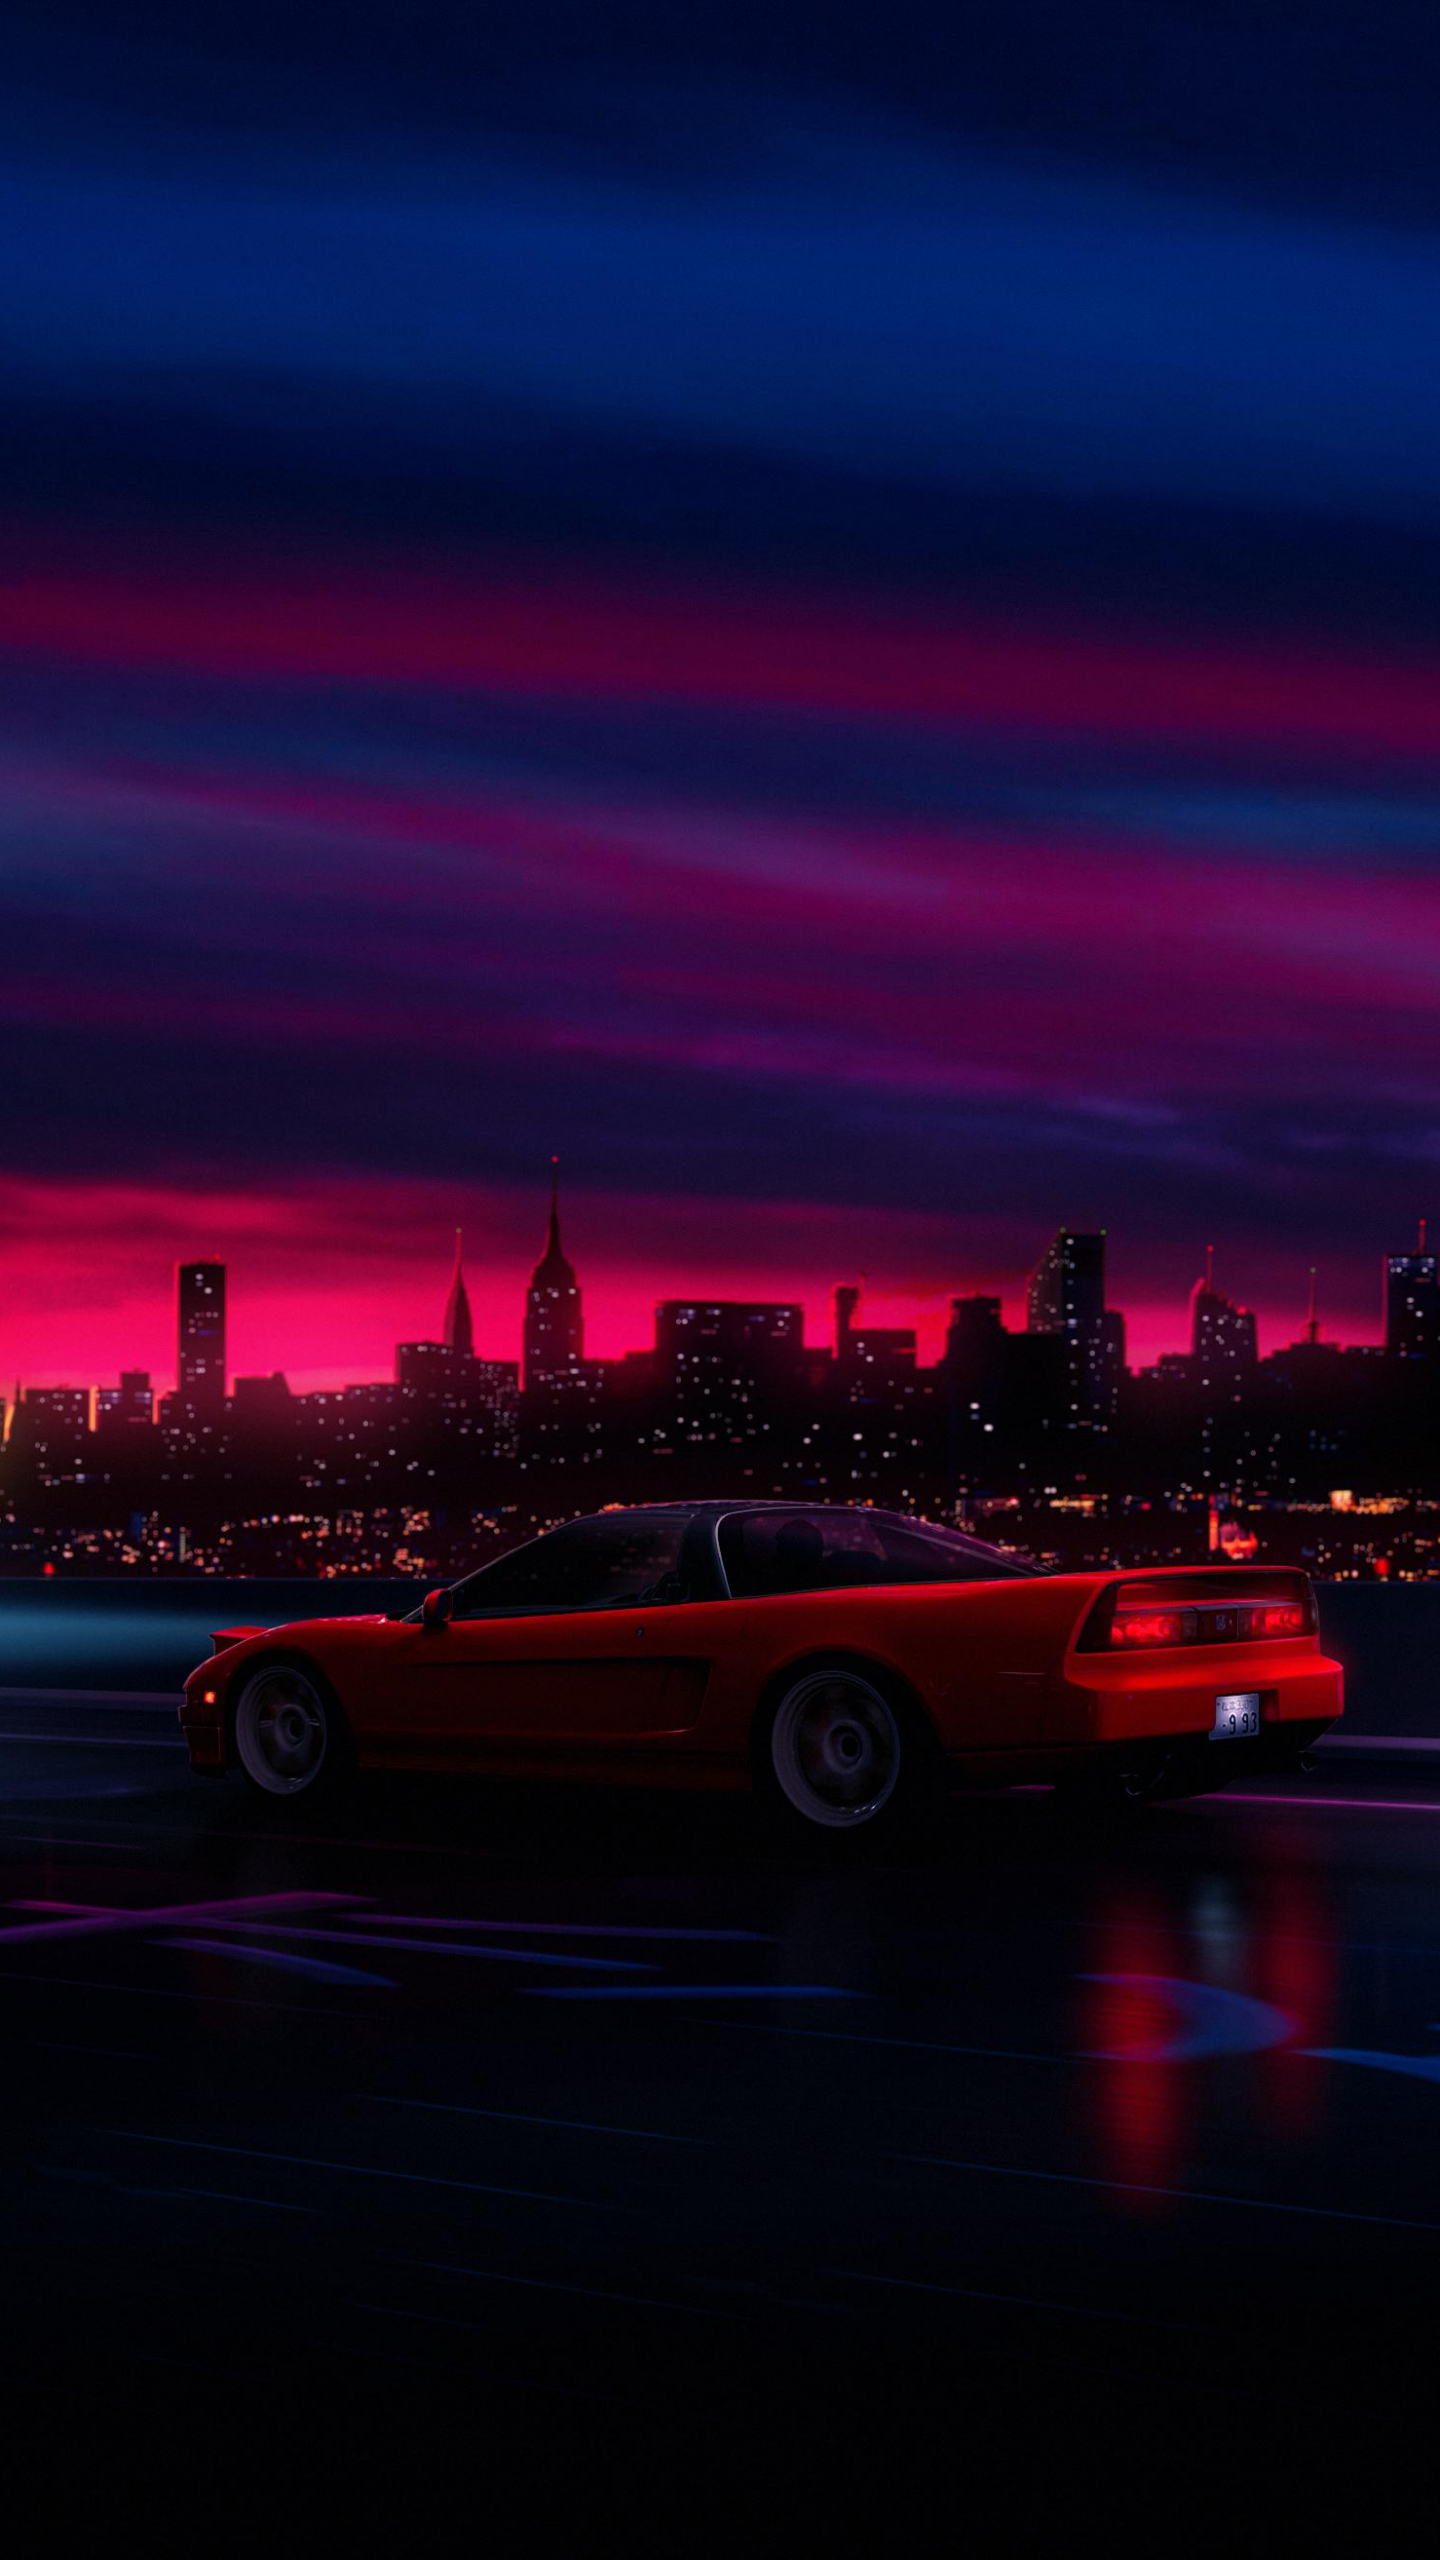 Free Download Retrowave 4k Wallpapers For Your Desktop Or Mobile Screen And 4670x2627 For Your Desktop Mobile Tablet Explore 36 Retro Wave 4k Pc Wallpapers Retro Wave 4k Pc